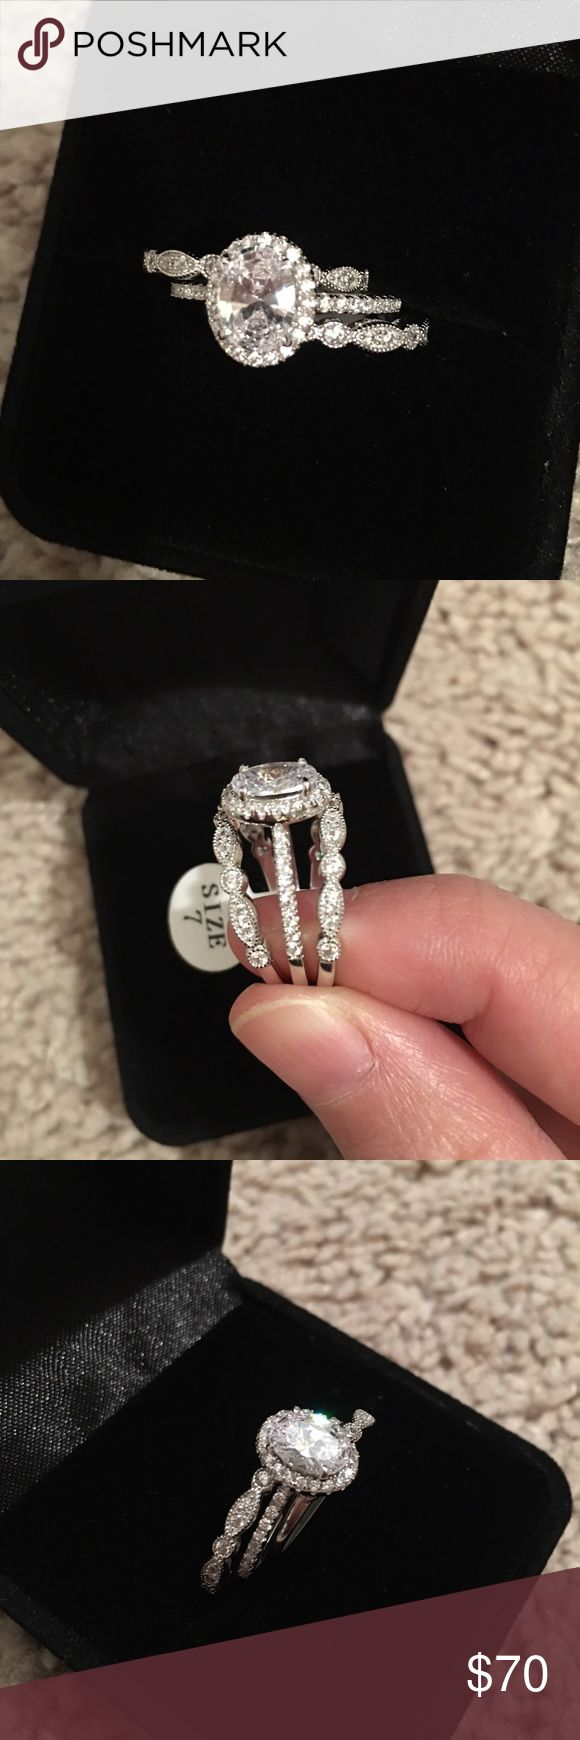 3pcs real silver engagement wedding ring set One set comes with 3pcs rings, size 8, sample sale, only tried on a few times Brand new available size 5, 6, 7, 8, 9, 10 ($85 for brand new set/3pcs) Real 925 sterling silver, 925 stamped, platinum plated, don't change color, will not fade, will not turn finger green Top quality Lab white sapphires, look just like real diamond, main stone is 1.75ct, accented by 32 pcs brilliant topaz Two bands inlay 26pcs small CZ Jewelry Rings